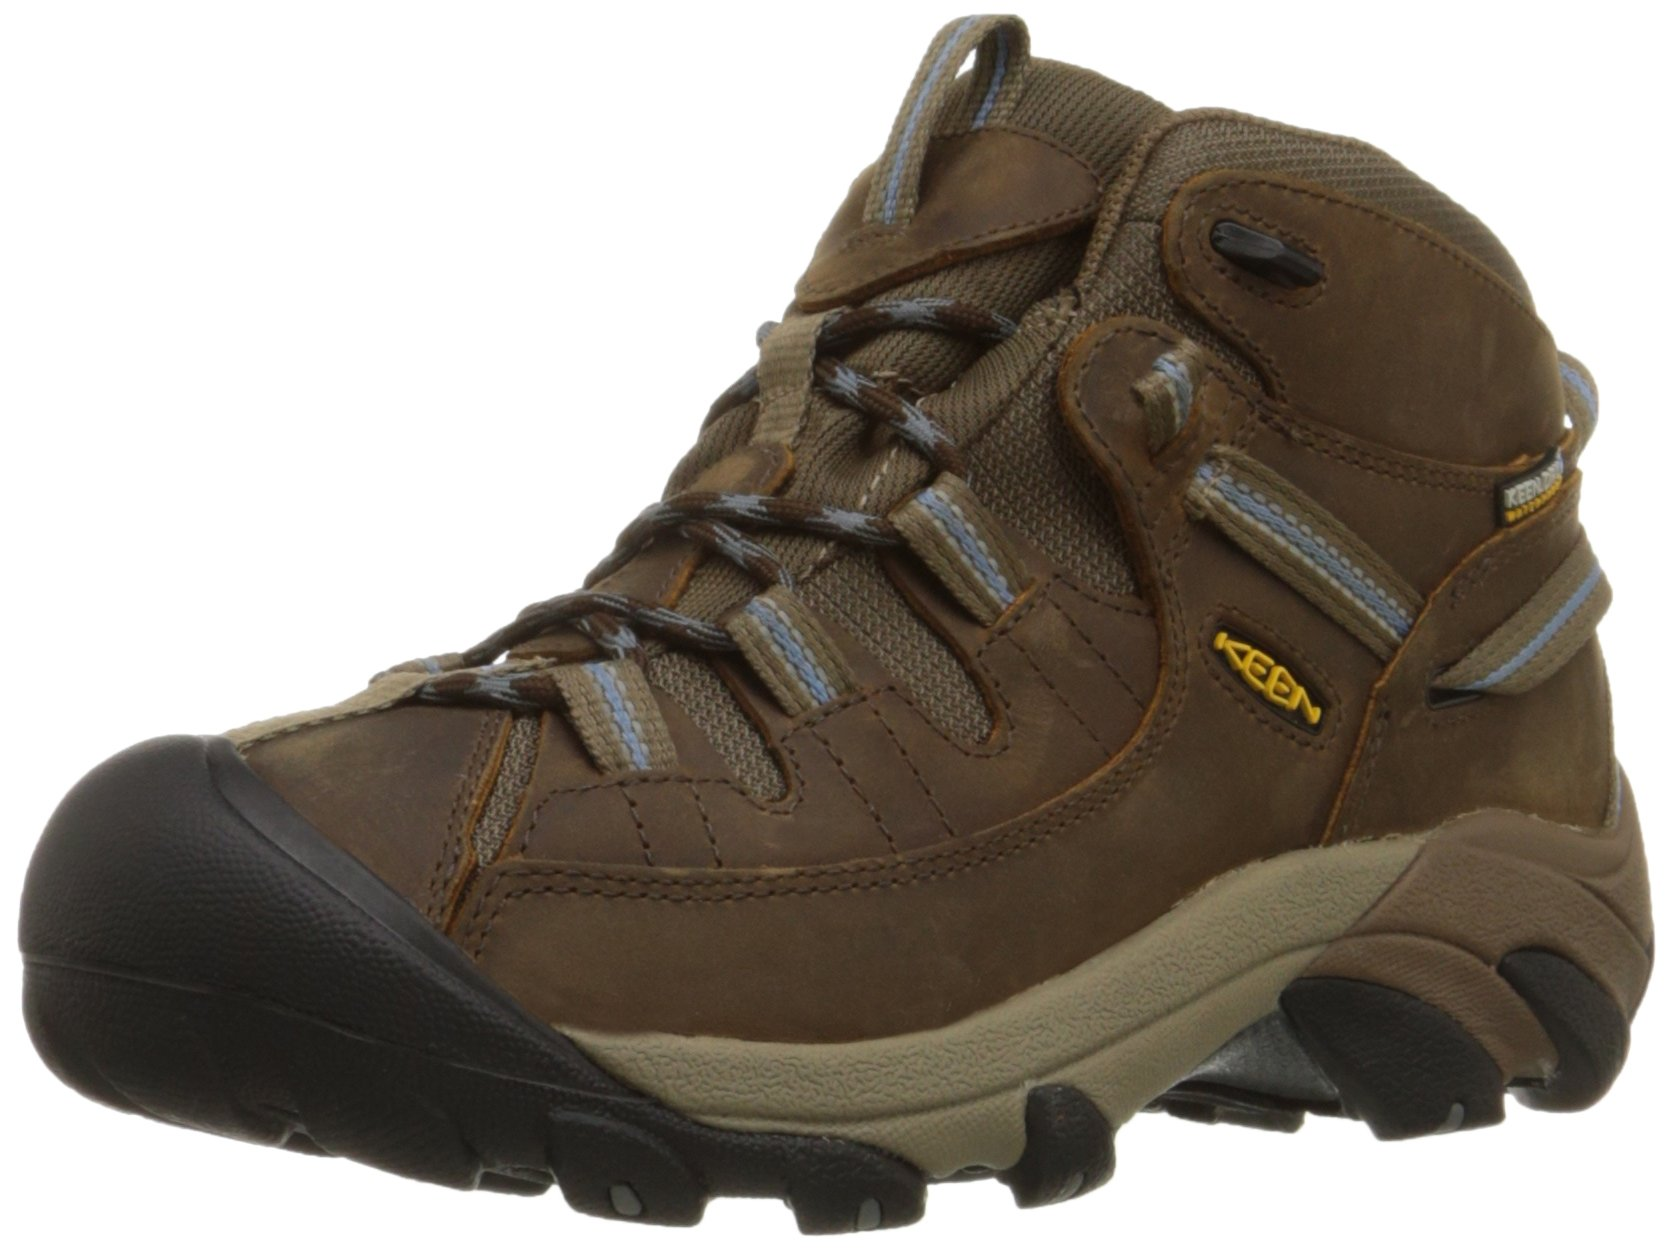 KEEN Women's Targhee II Mid Waterproof Hiking Boot,Slate Black/Flint Stone,8.5 M US